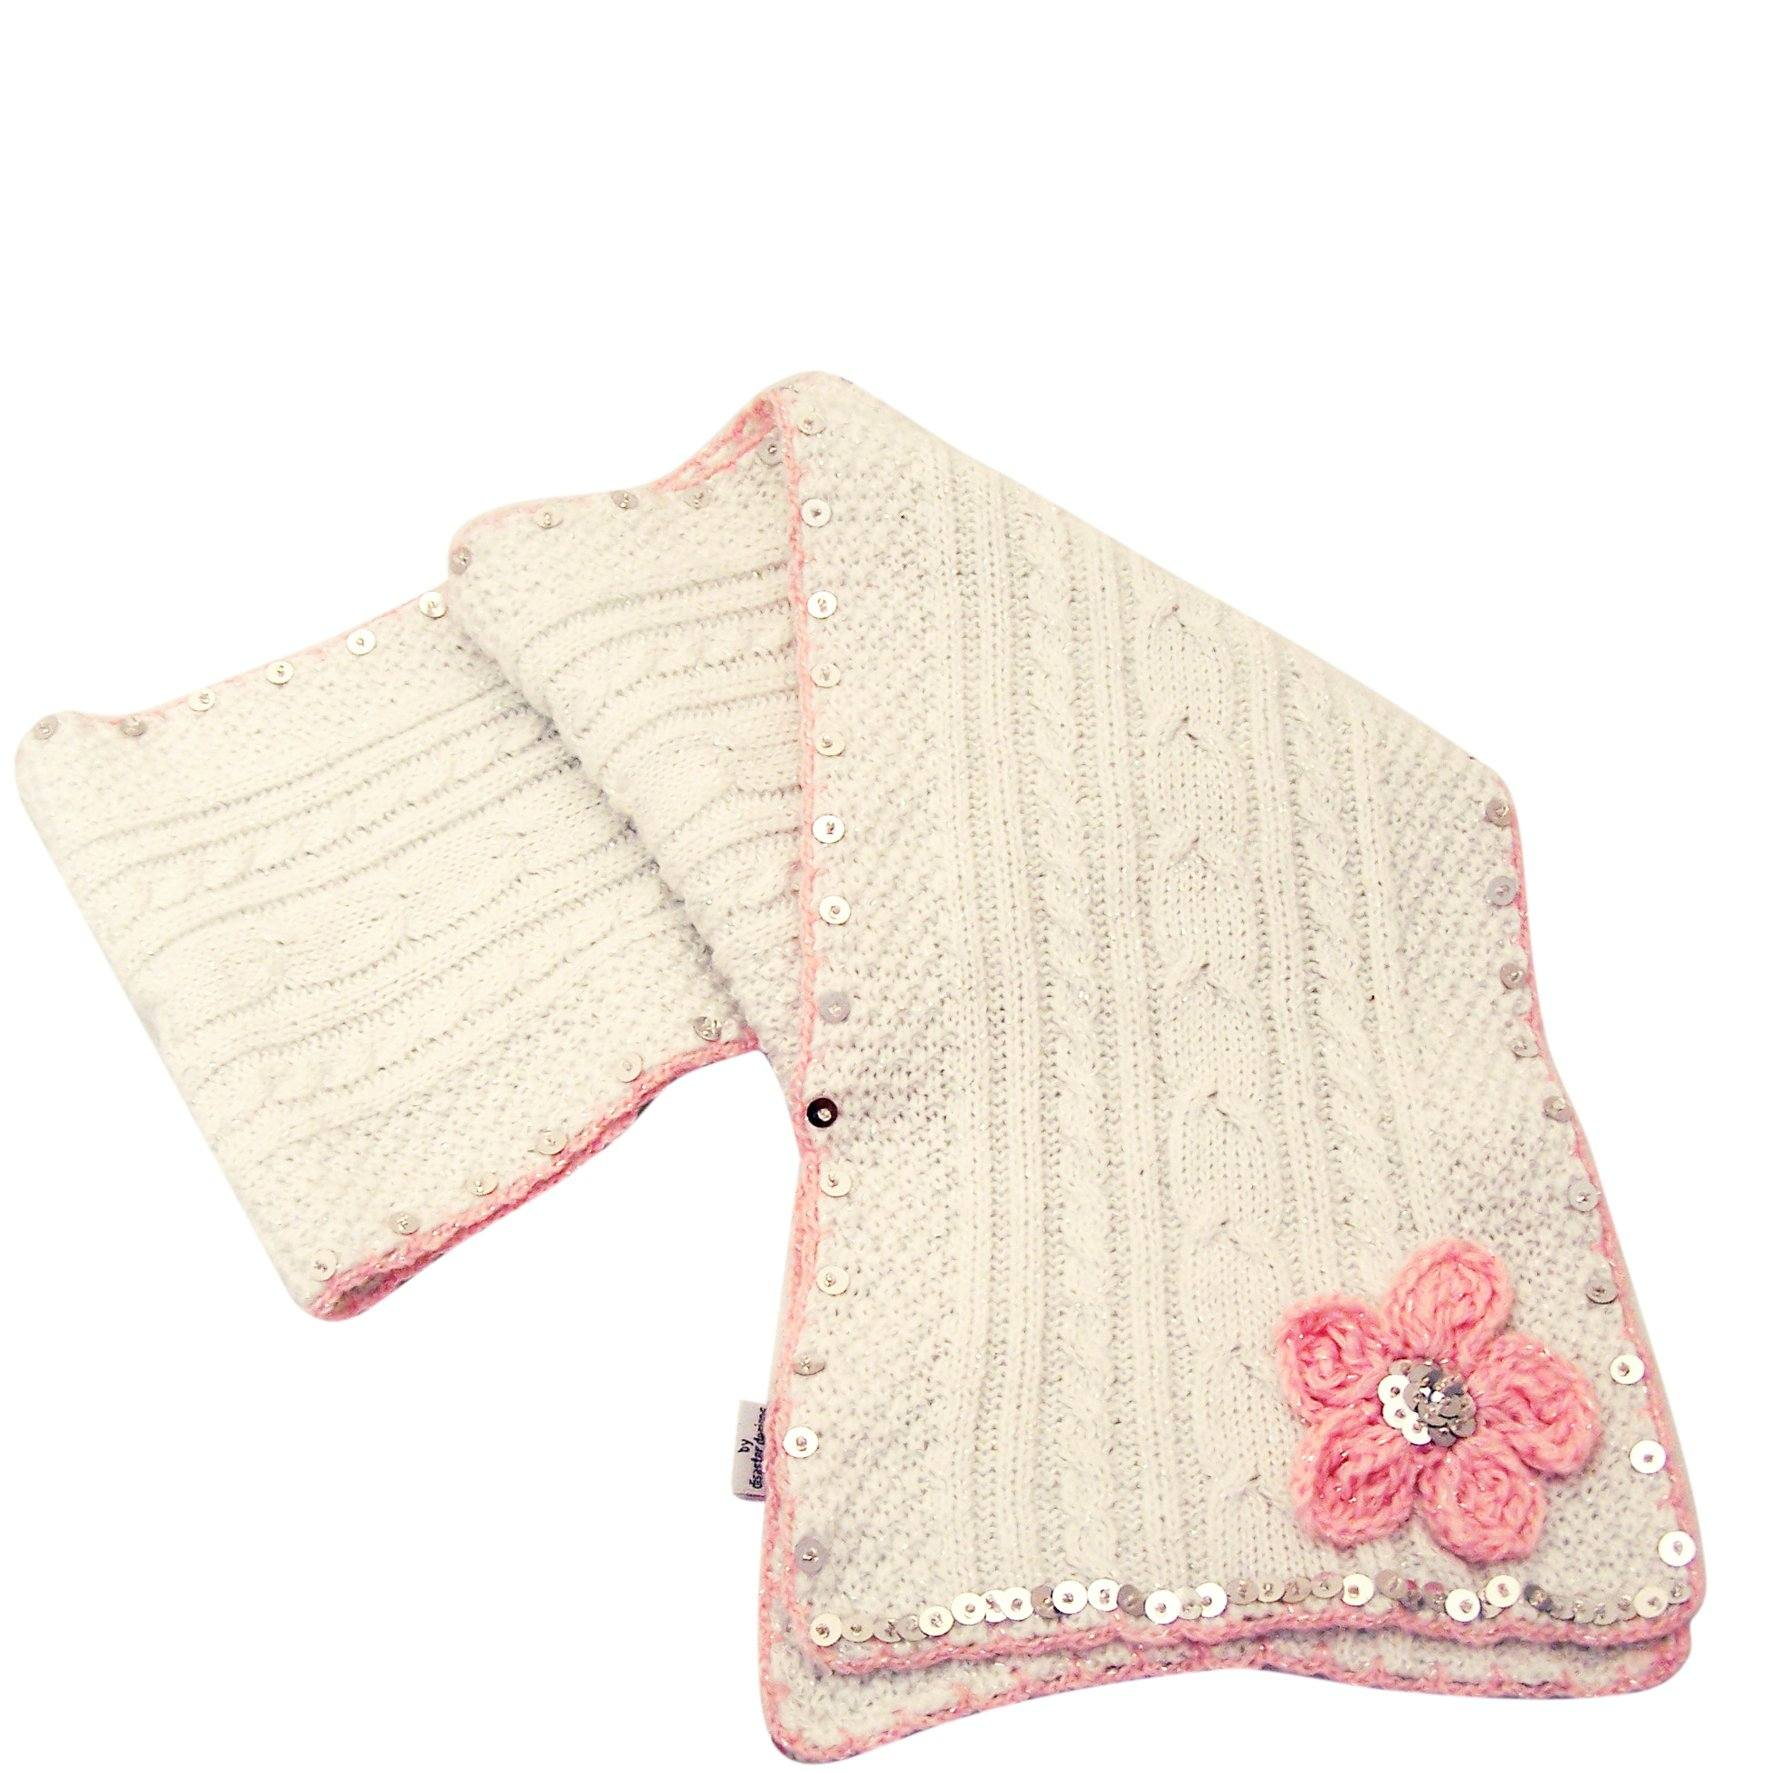 Knitted Flower Scarf Cream With Pink - BouChic